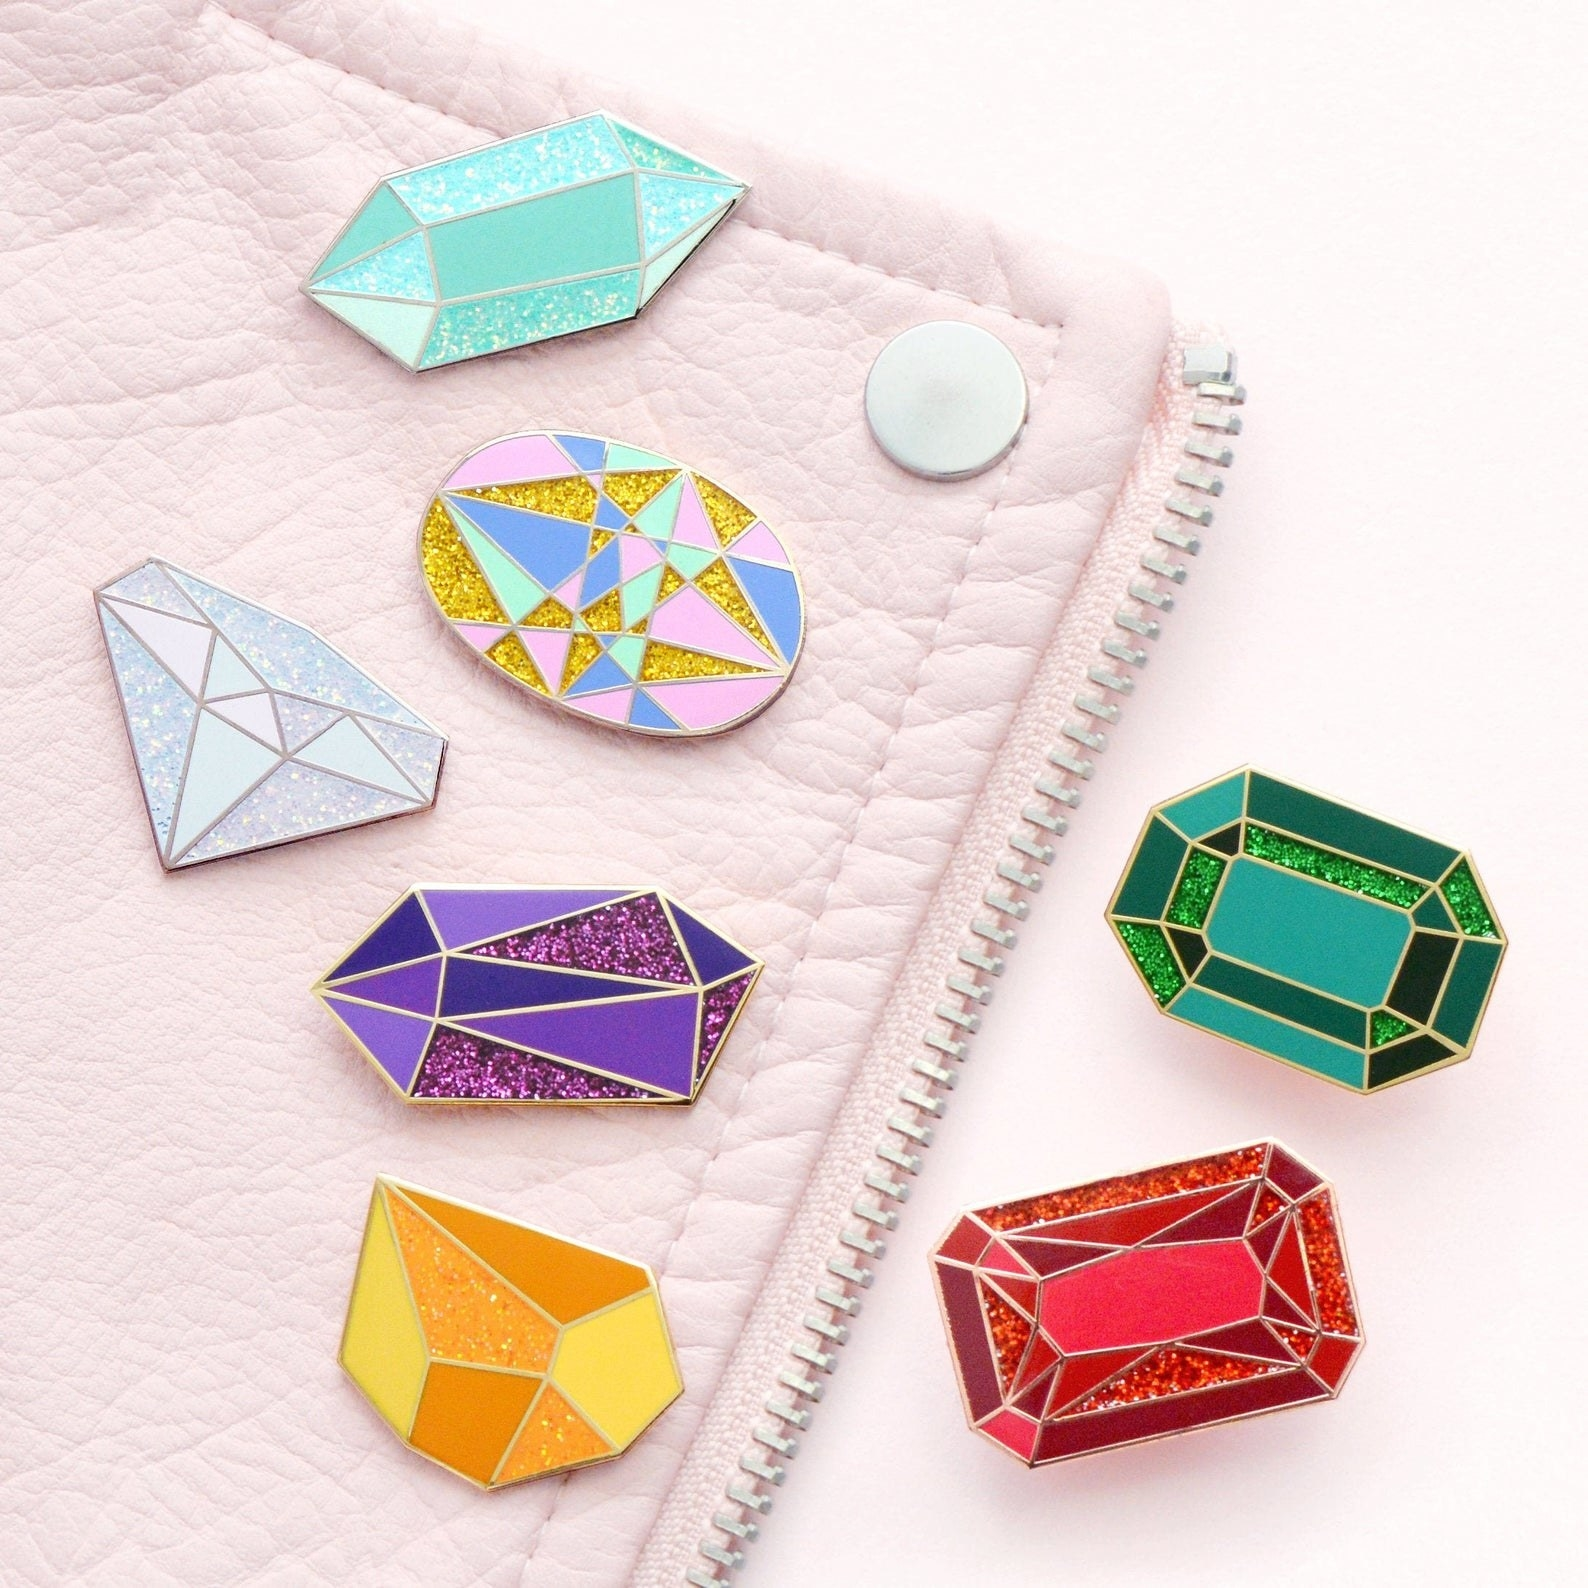 product shot of different pins shaped like gem stones